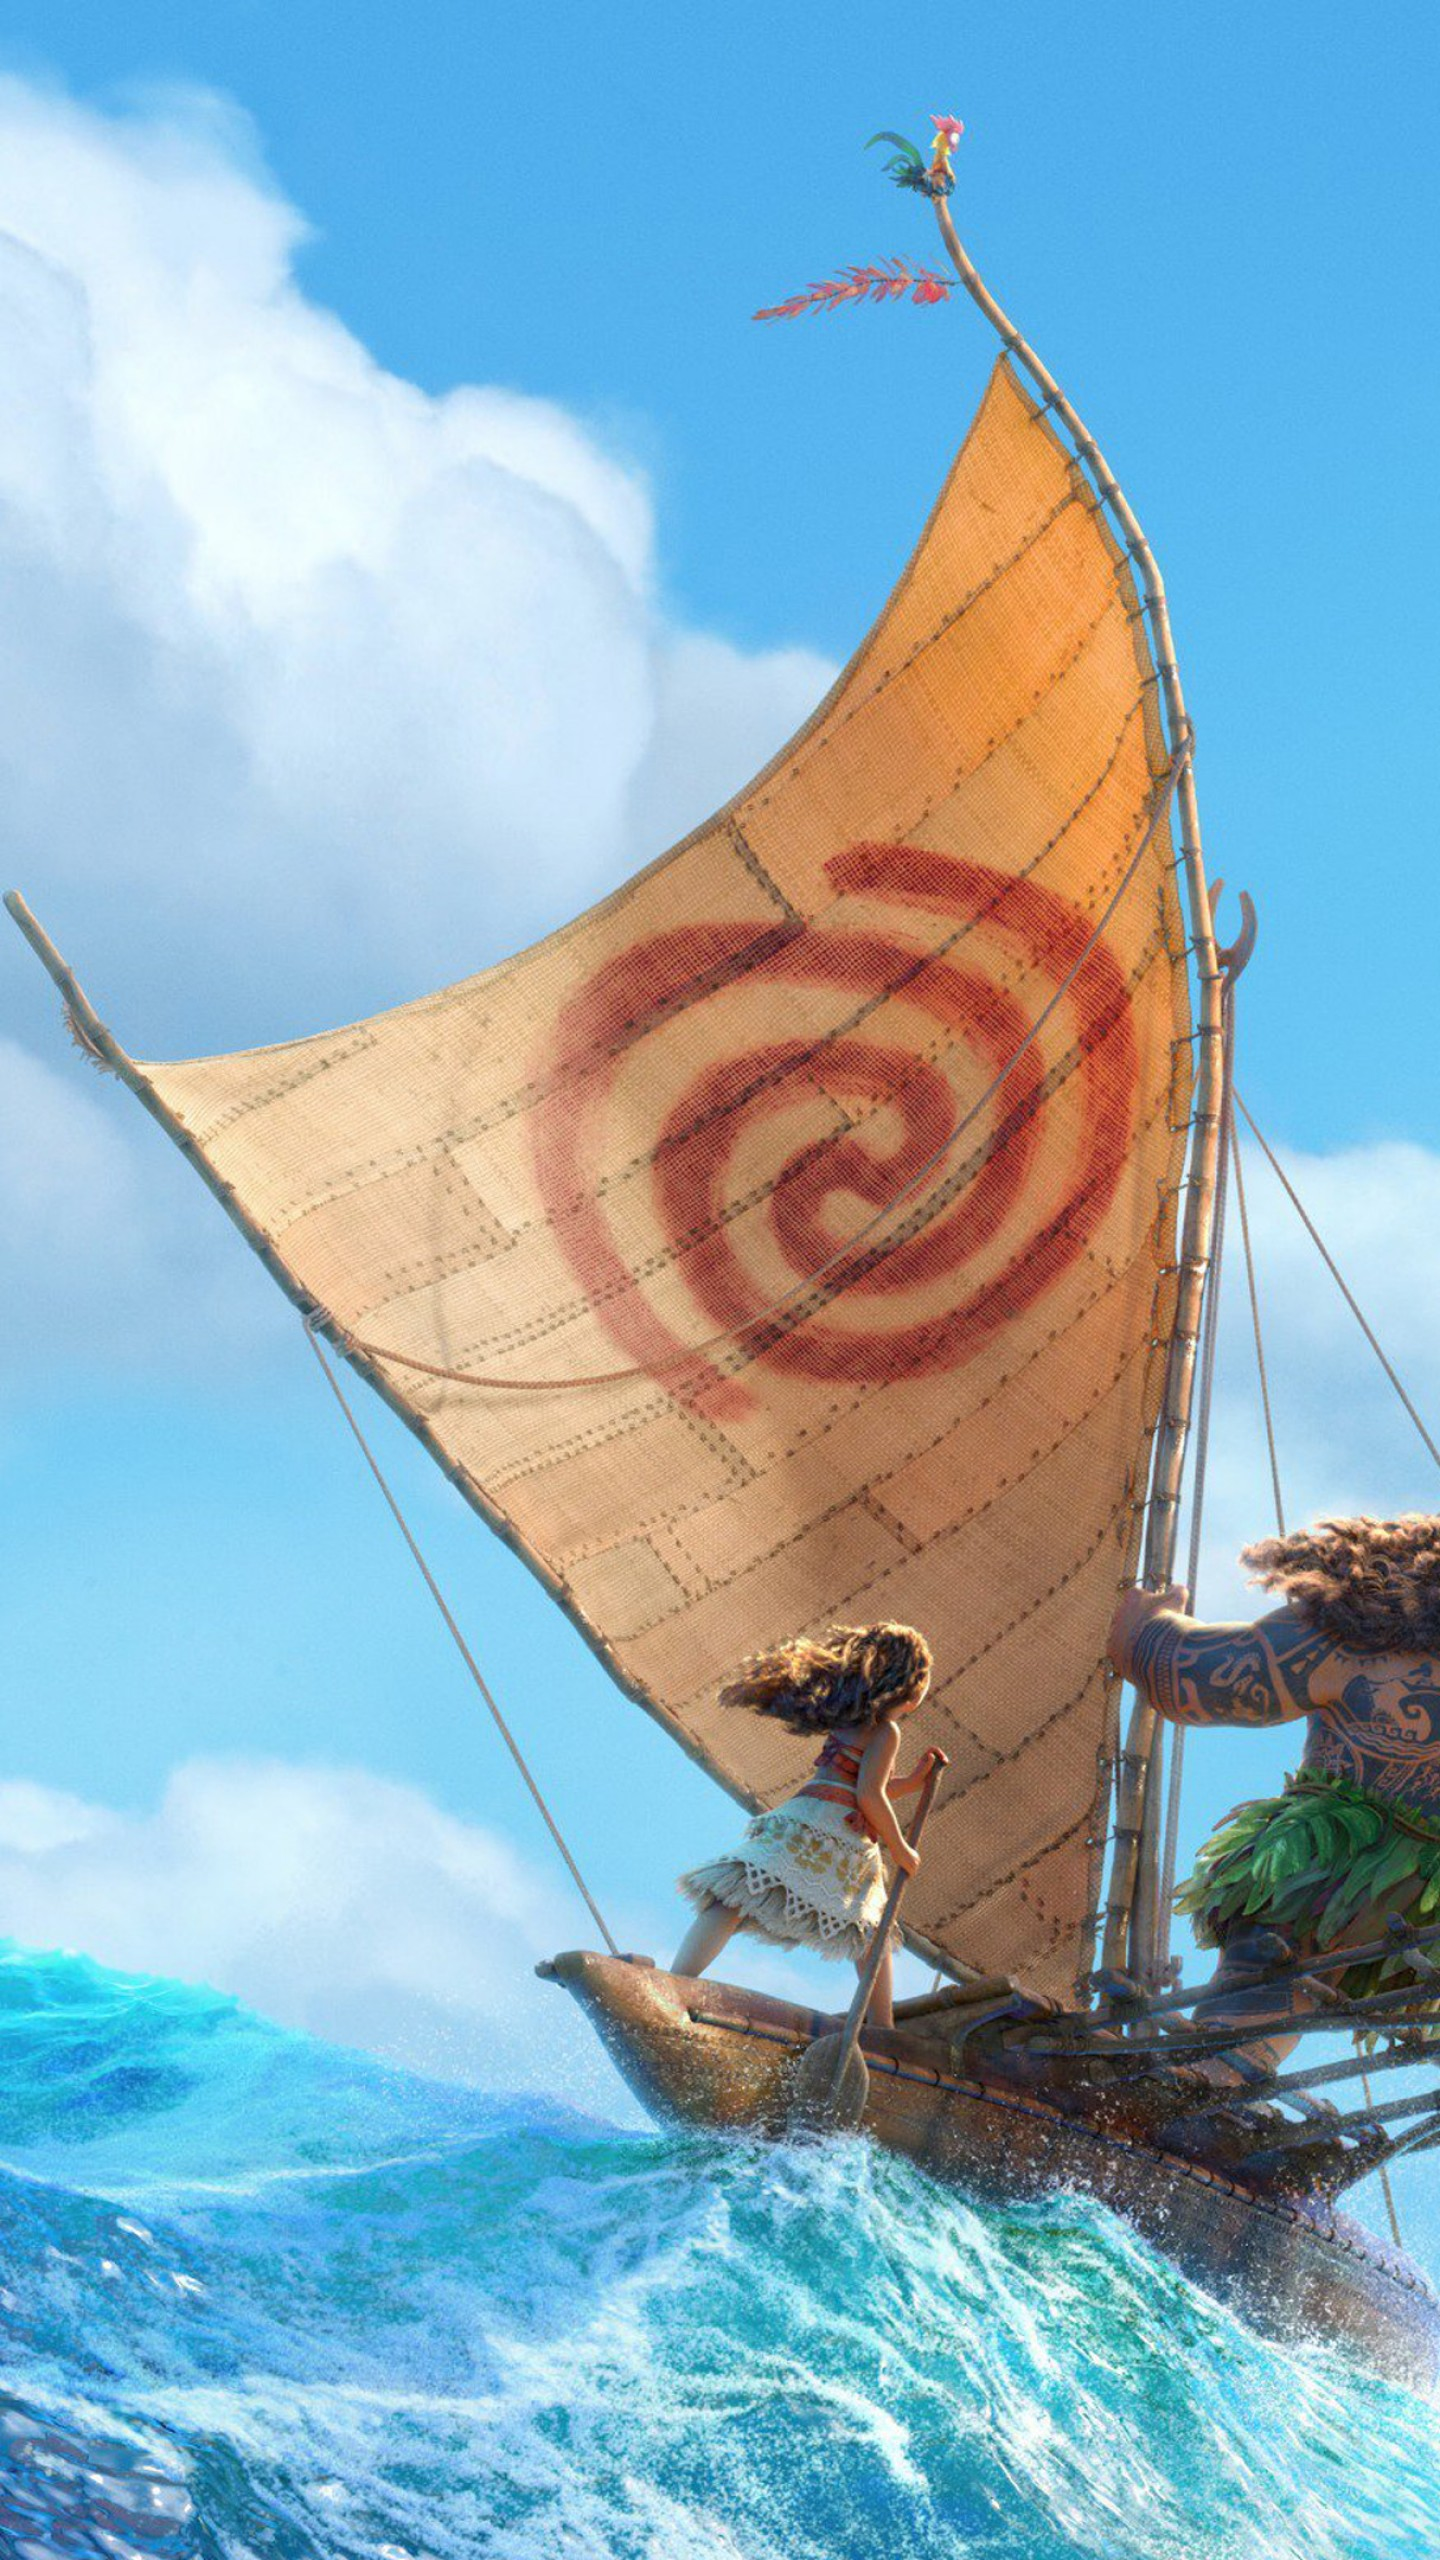 Us Military Hd Wallpapers Wallpaper Moana Maui Ocean Best Animation Movies Of